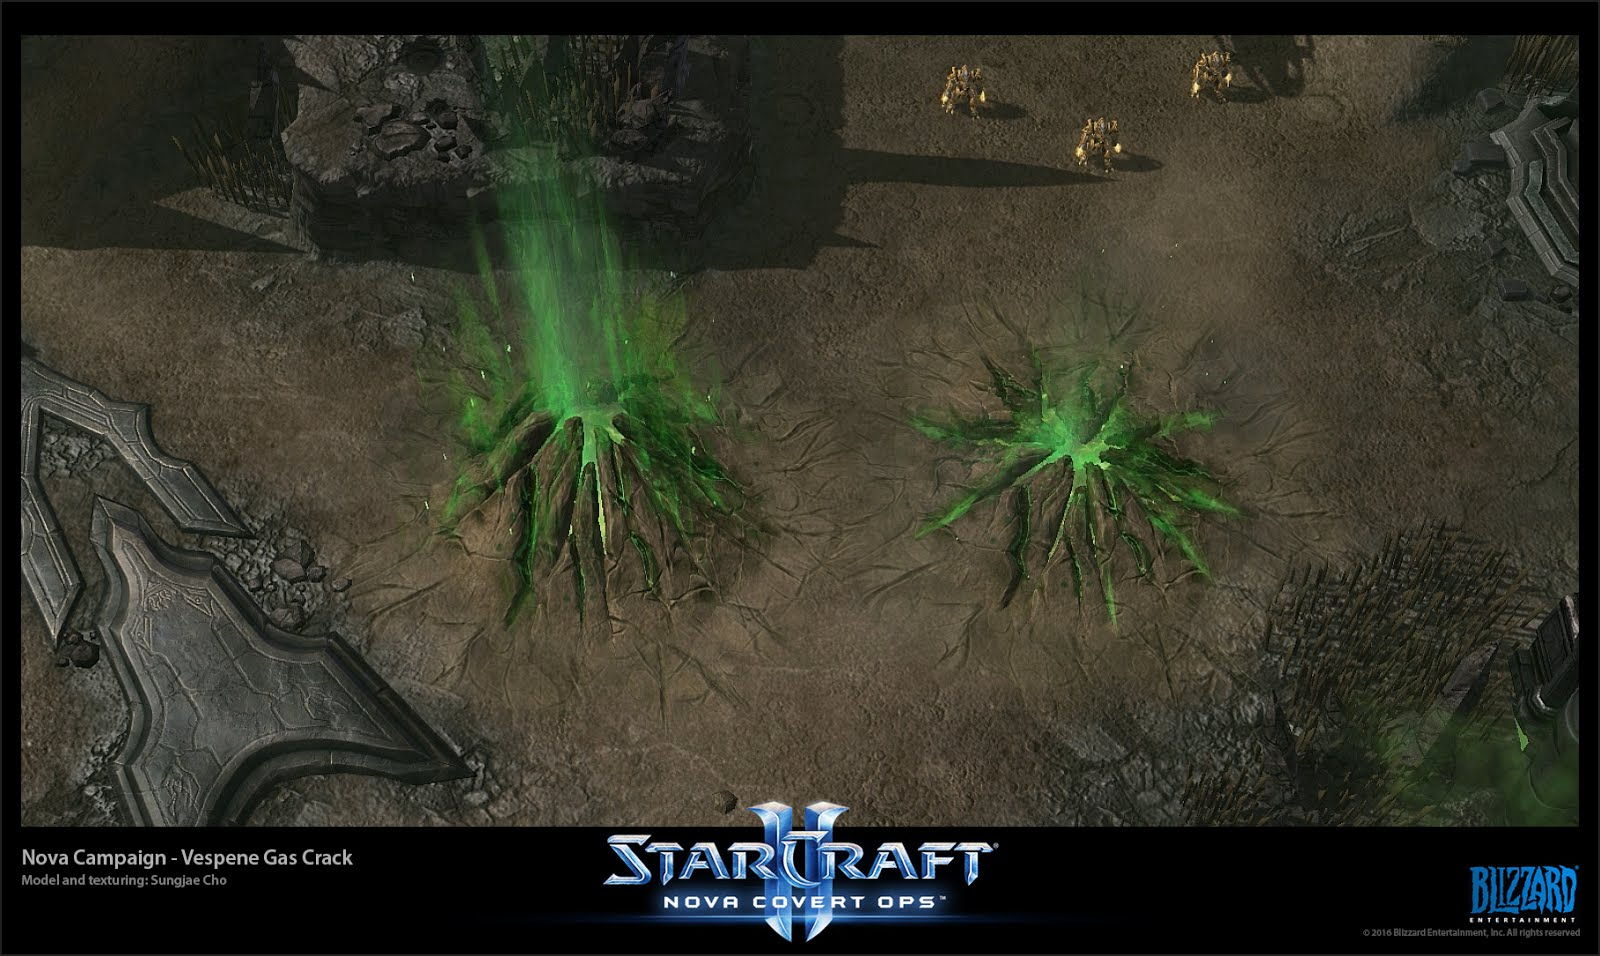 starcraft 2 nova covert ops crack